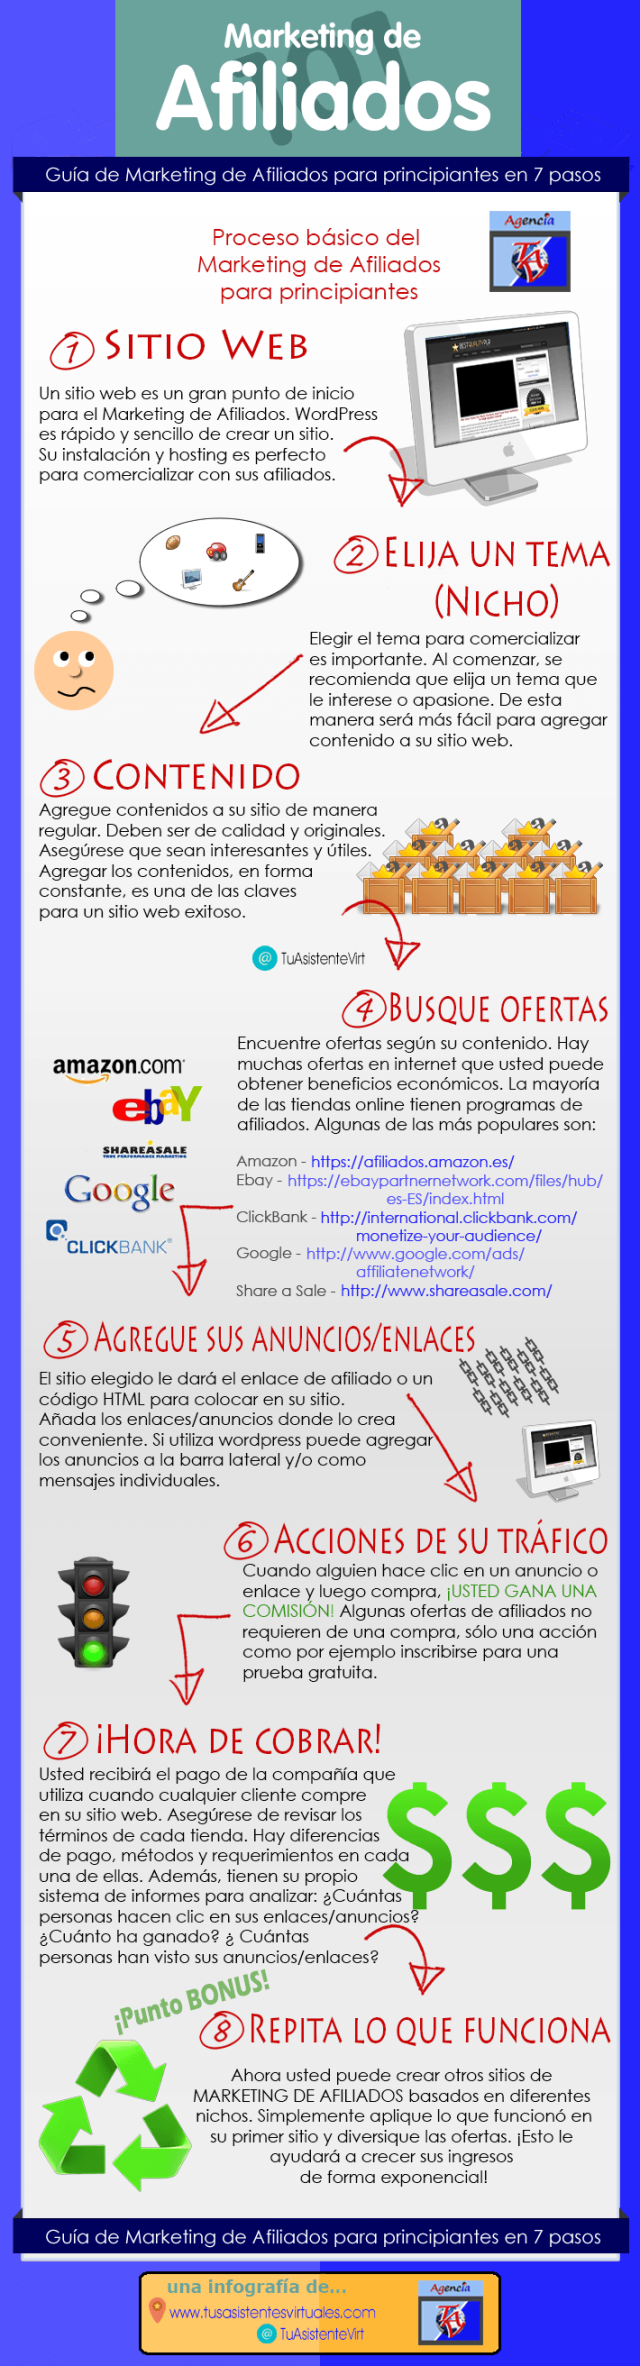 Guía de marketing de afiliación en 7 pasos #infografia #infographic #marketing